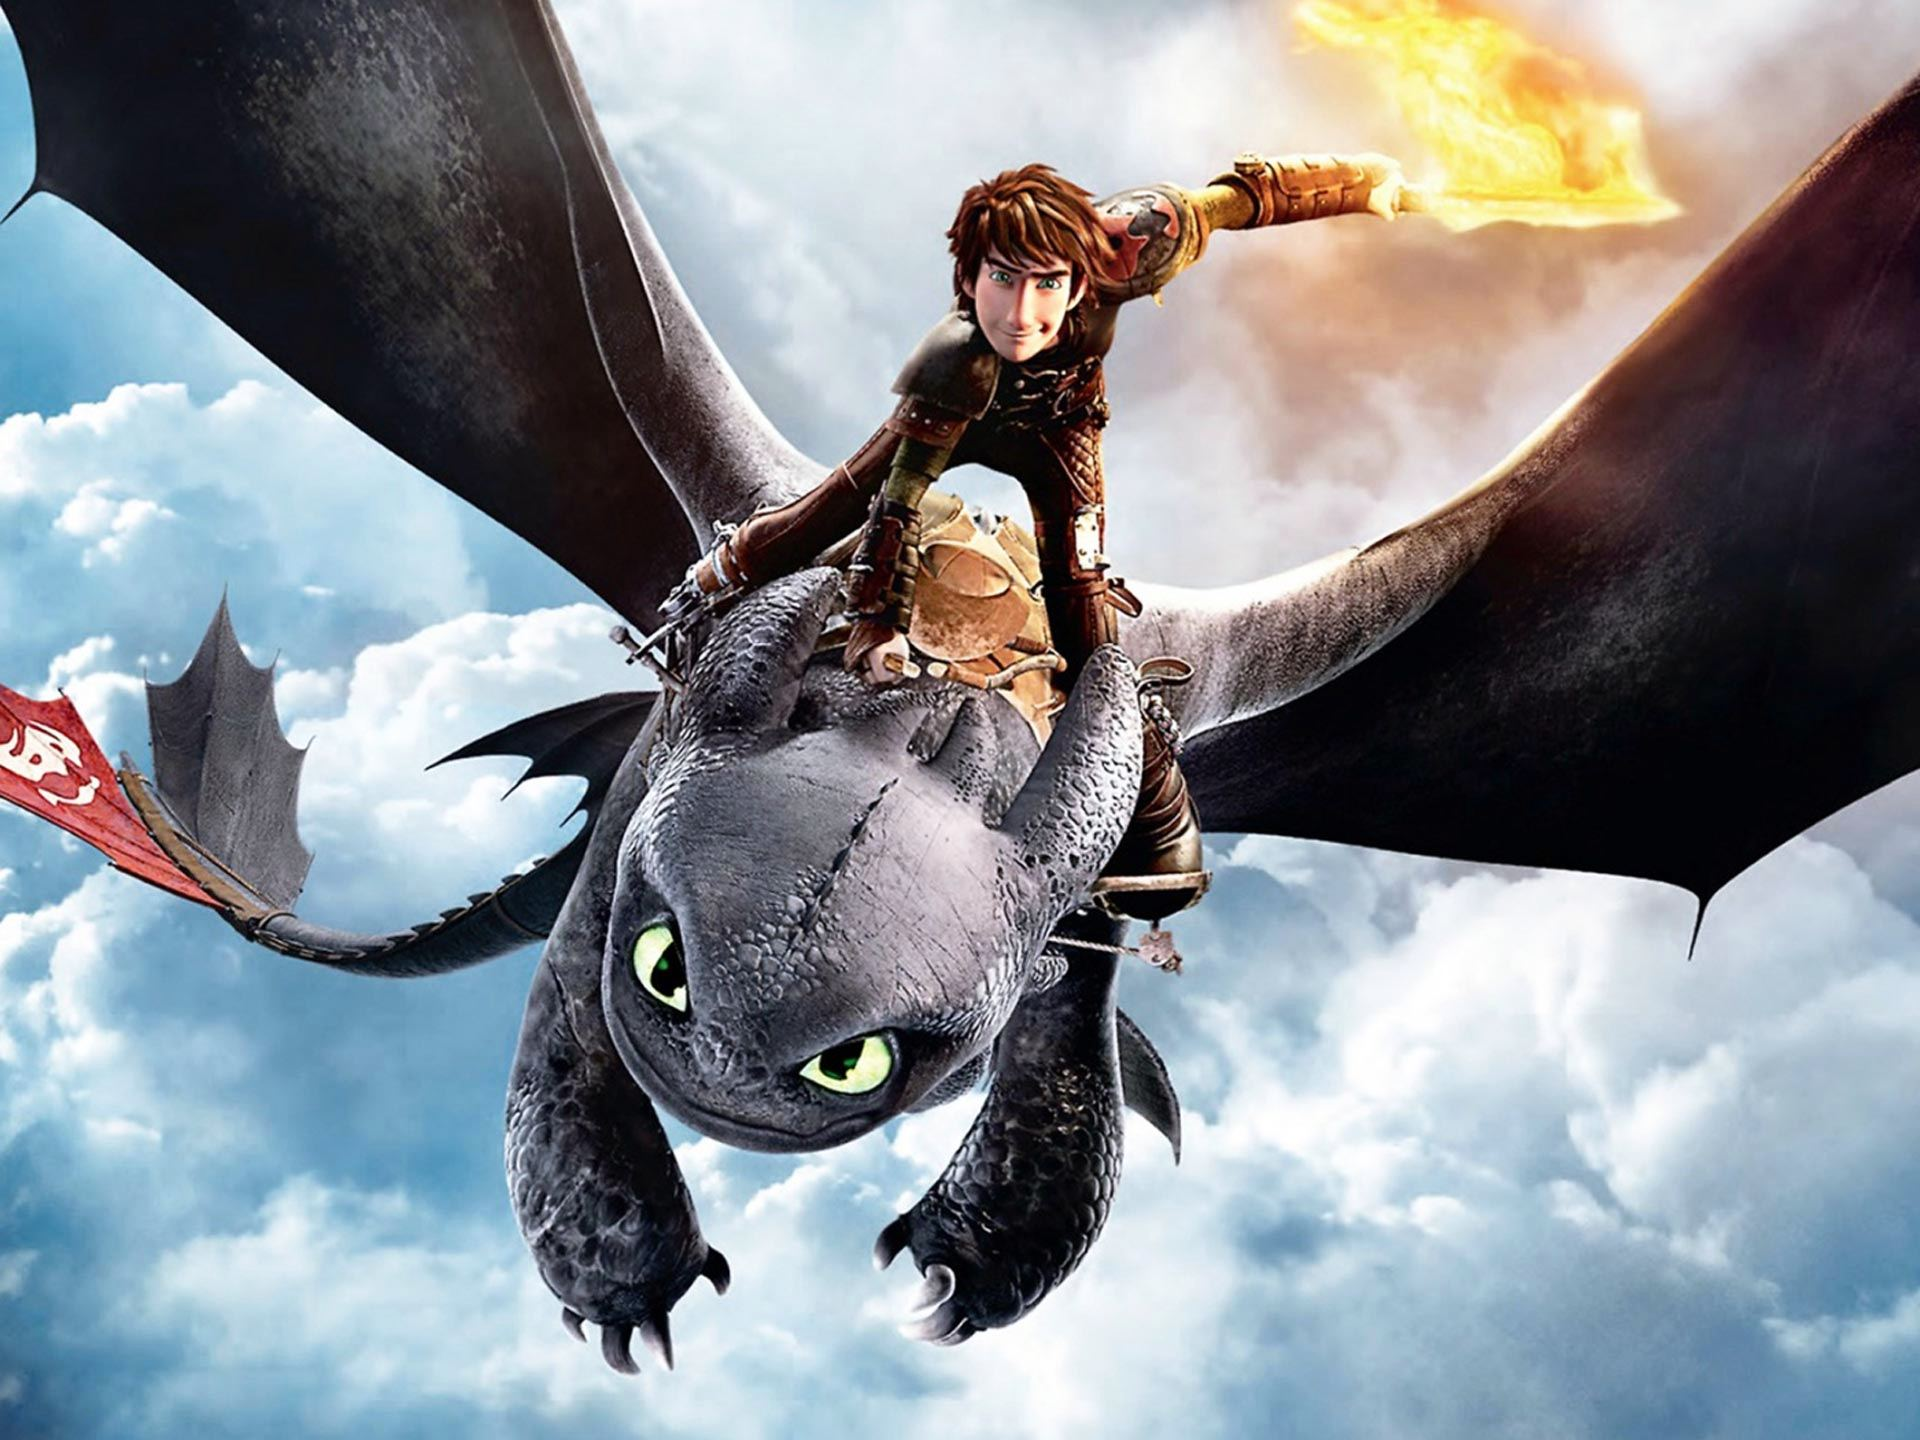 How To Train Your Dragon 2 Wallpaper 1920x1440 54512